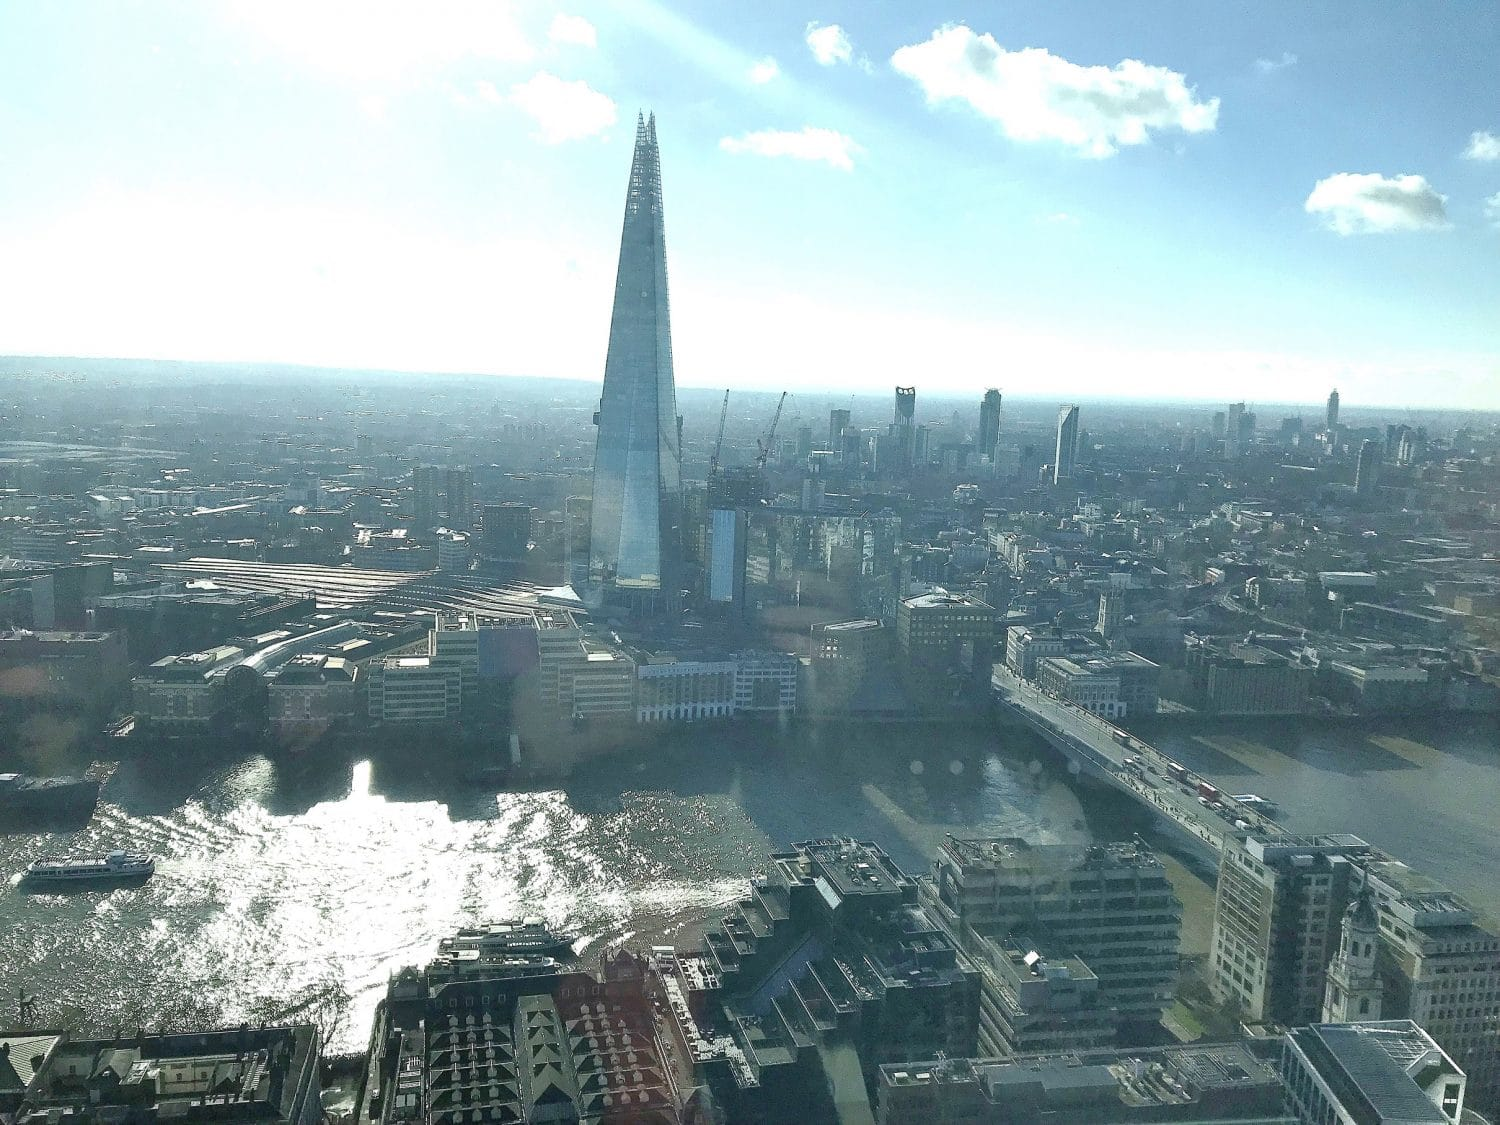 Enjoy views over London while you brunch on level 31, the Shard